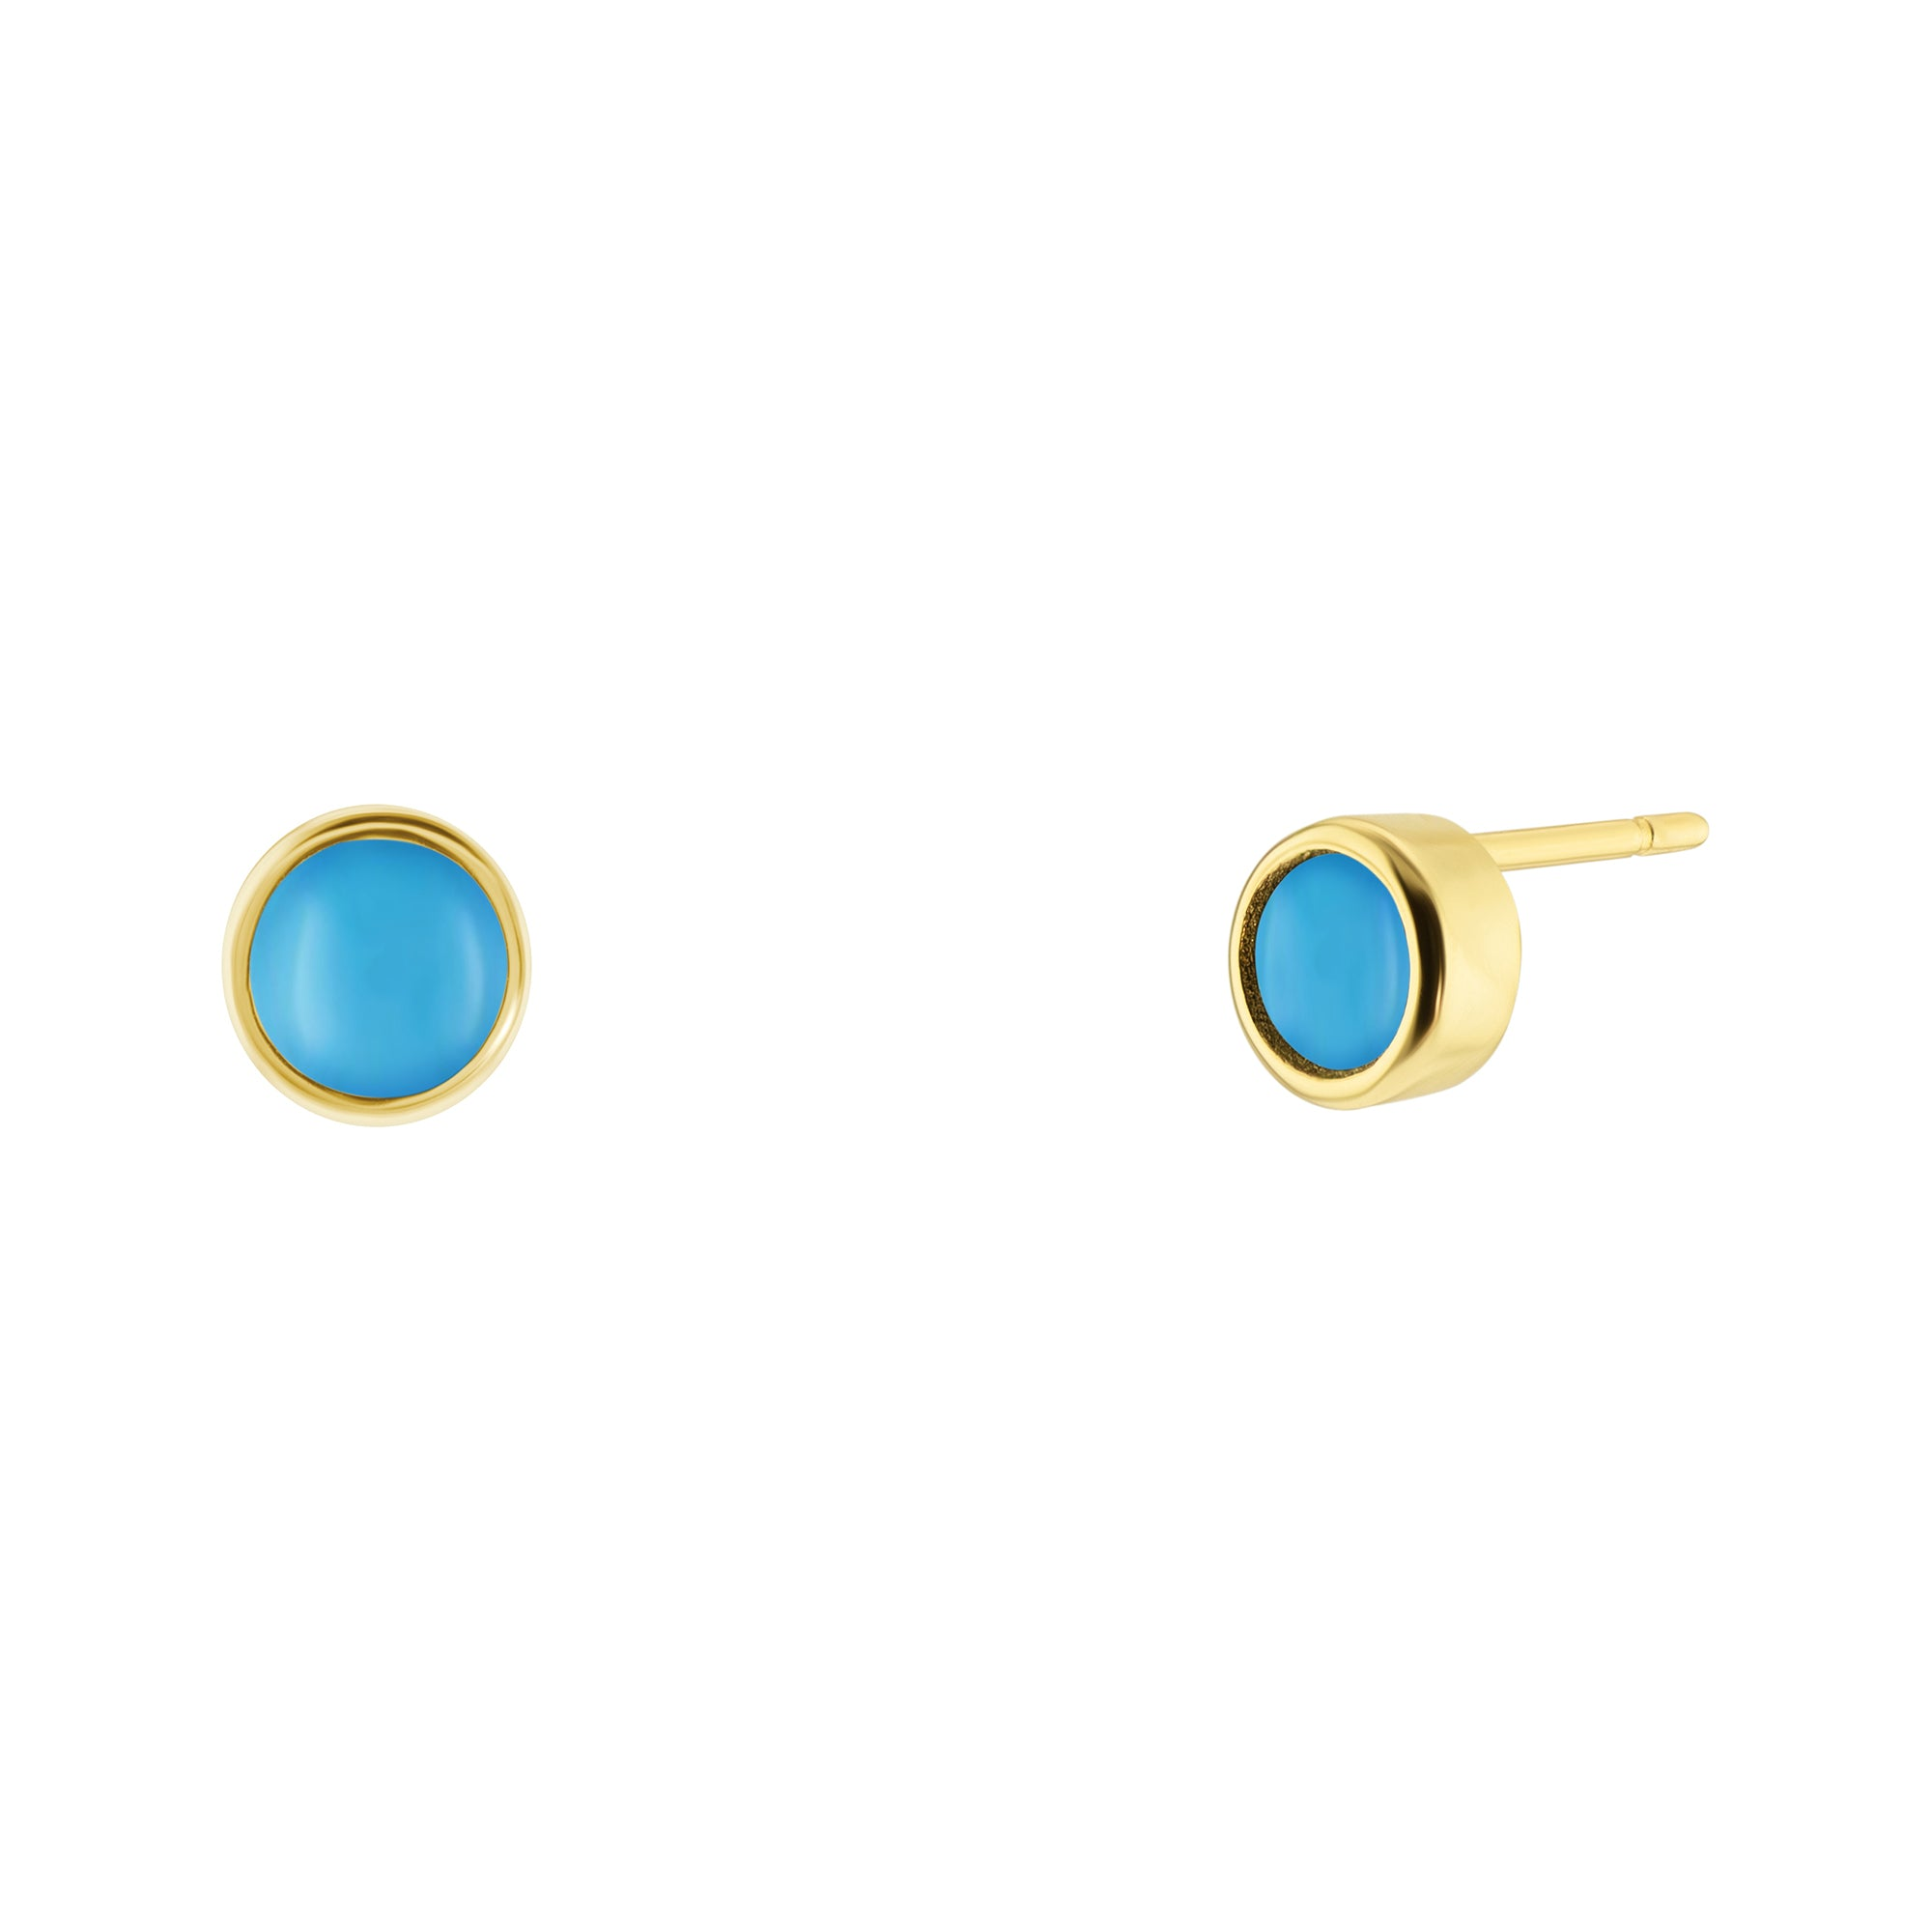 Mini Turquoise Stud Stone Earrings - Yellow Gold - Voare Jewelry